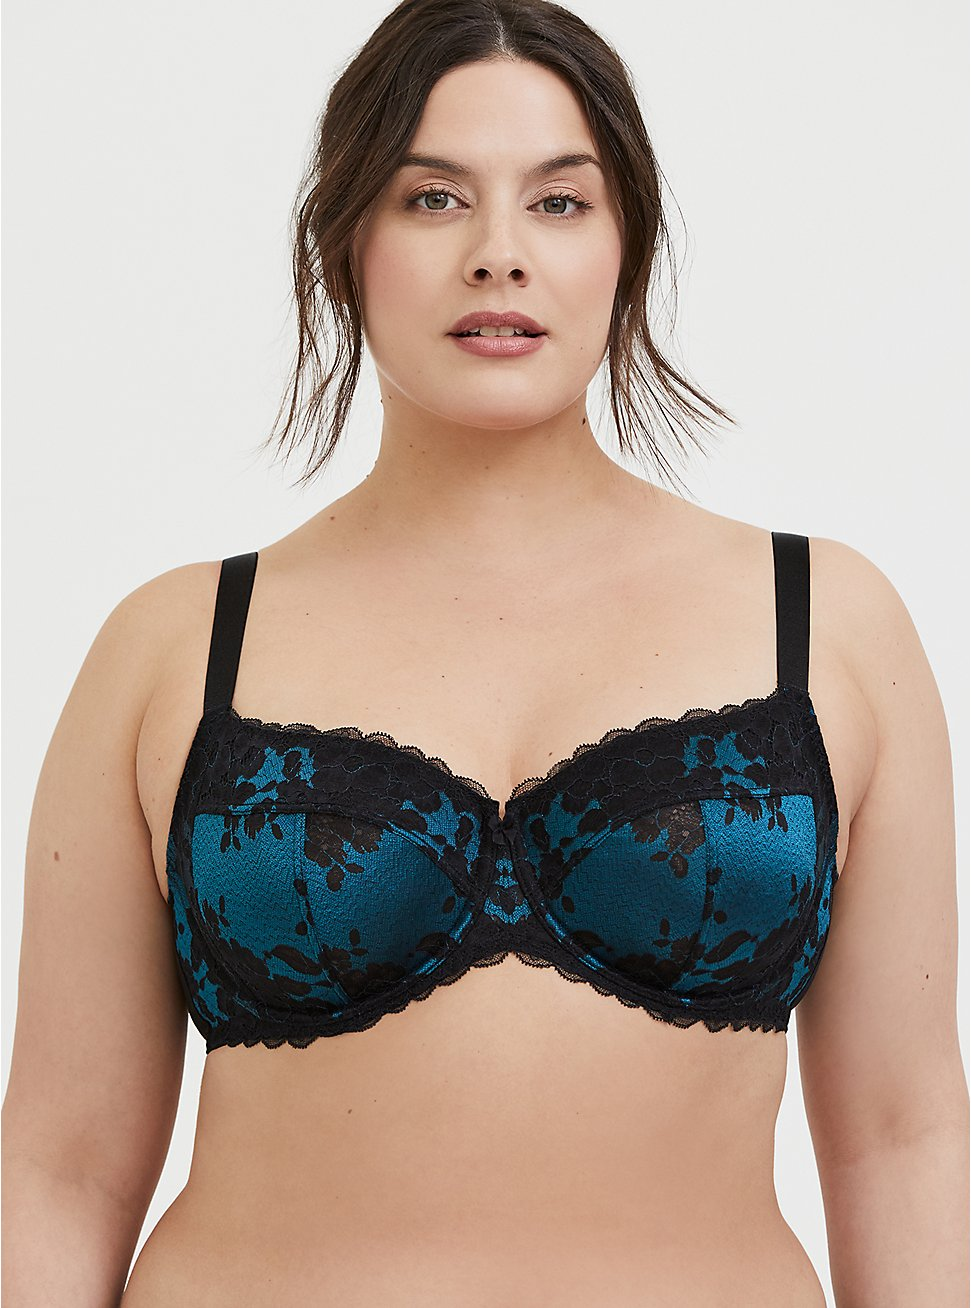 Dark Teal Microfiber & Black Lace Unlined Full Coverage Bra, , hi-res